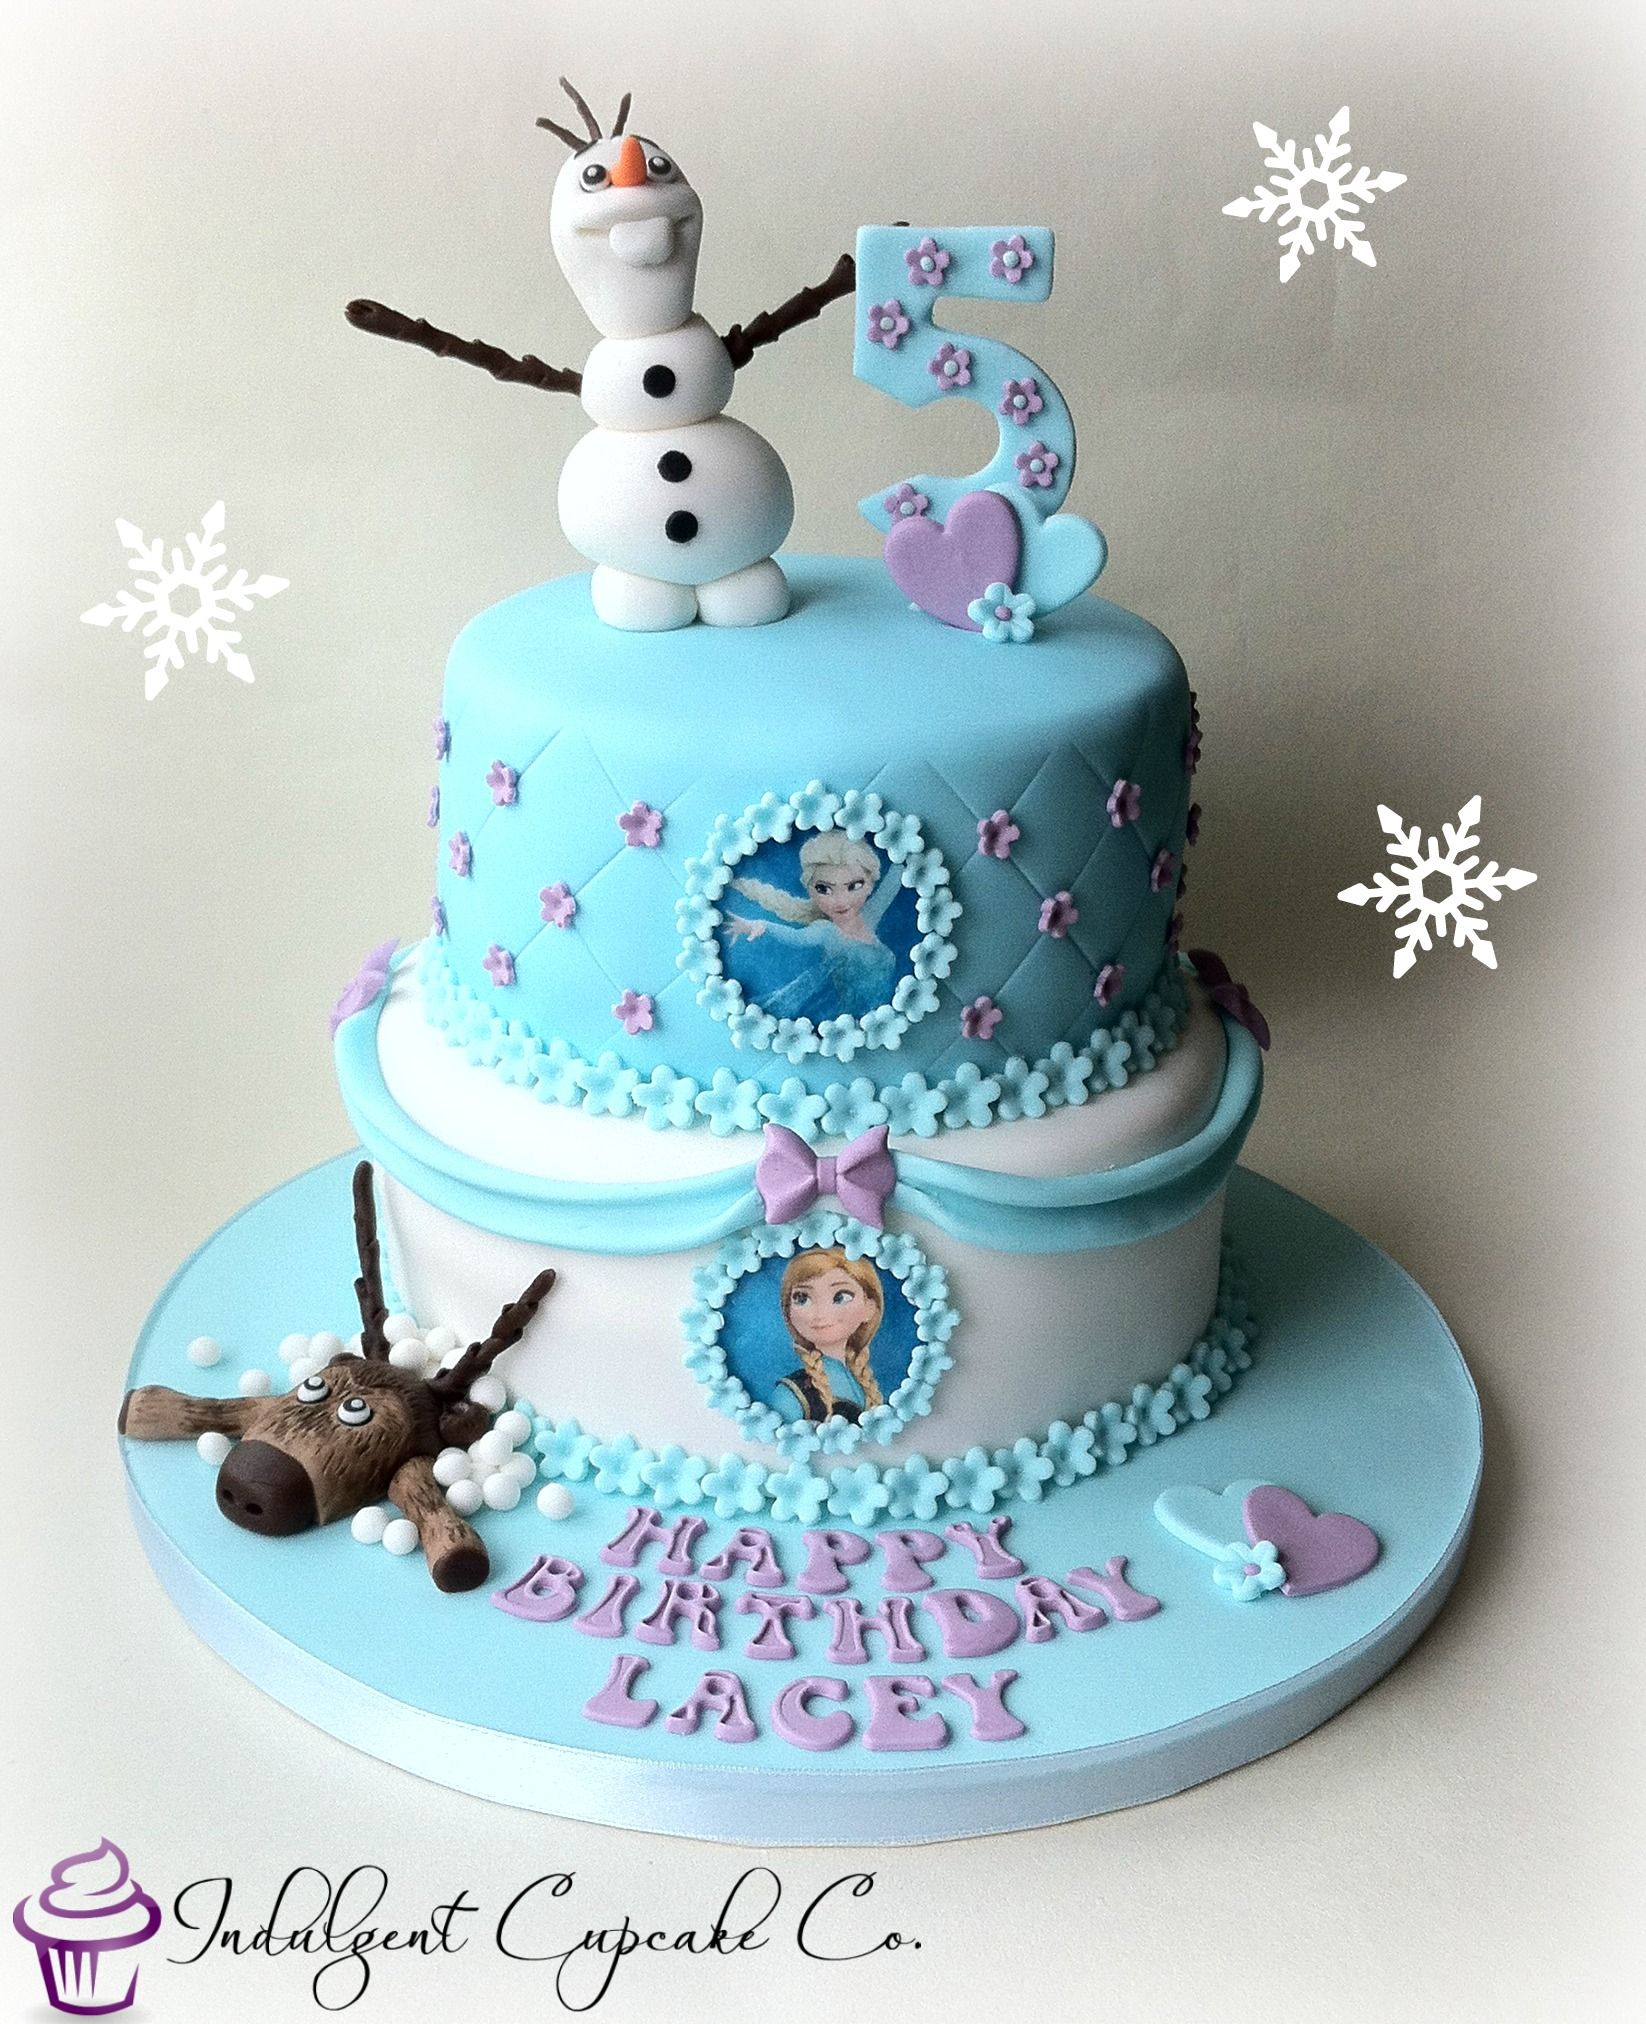 2 Tier Frozen Cake With Hand Made Decorations With